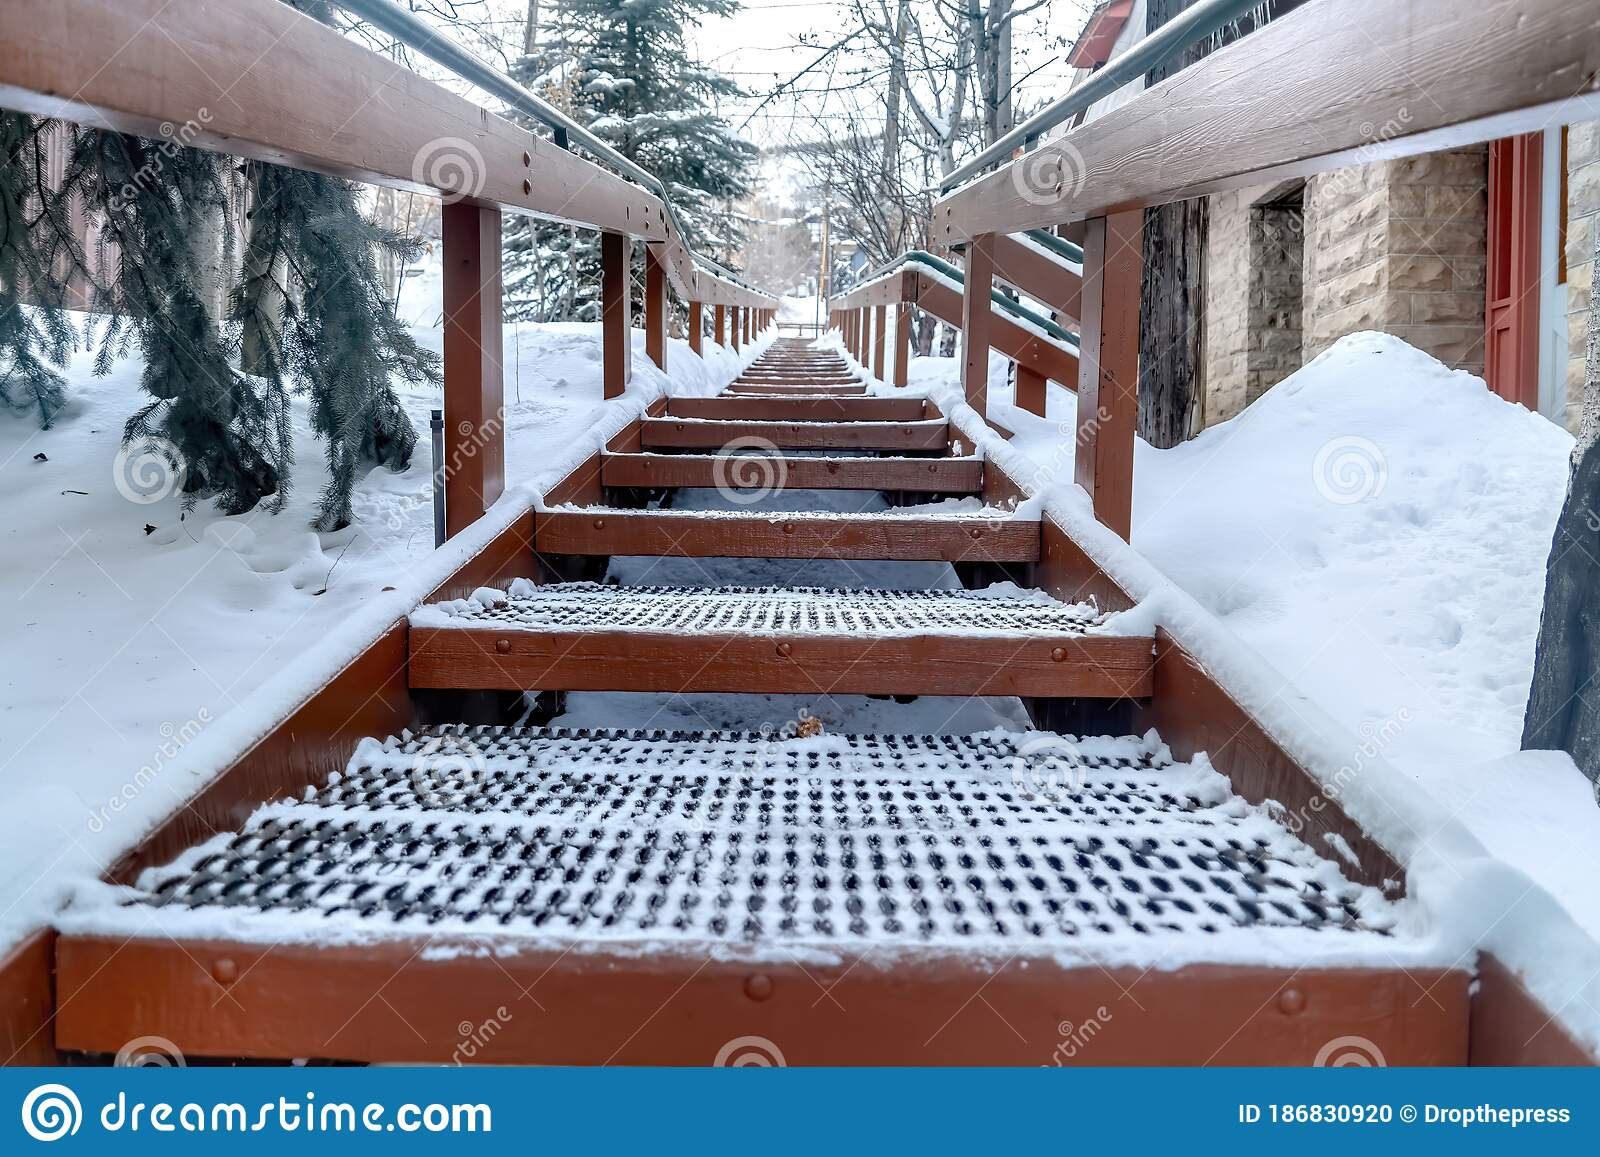 Image of: Focus On Grate Metal Treads Of Outdoor Stairs Against Snowy Hill In Winter Stock Photo Image Of Overcast Season 186830920